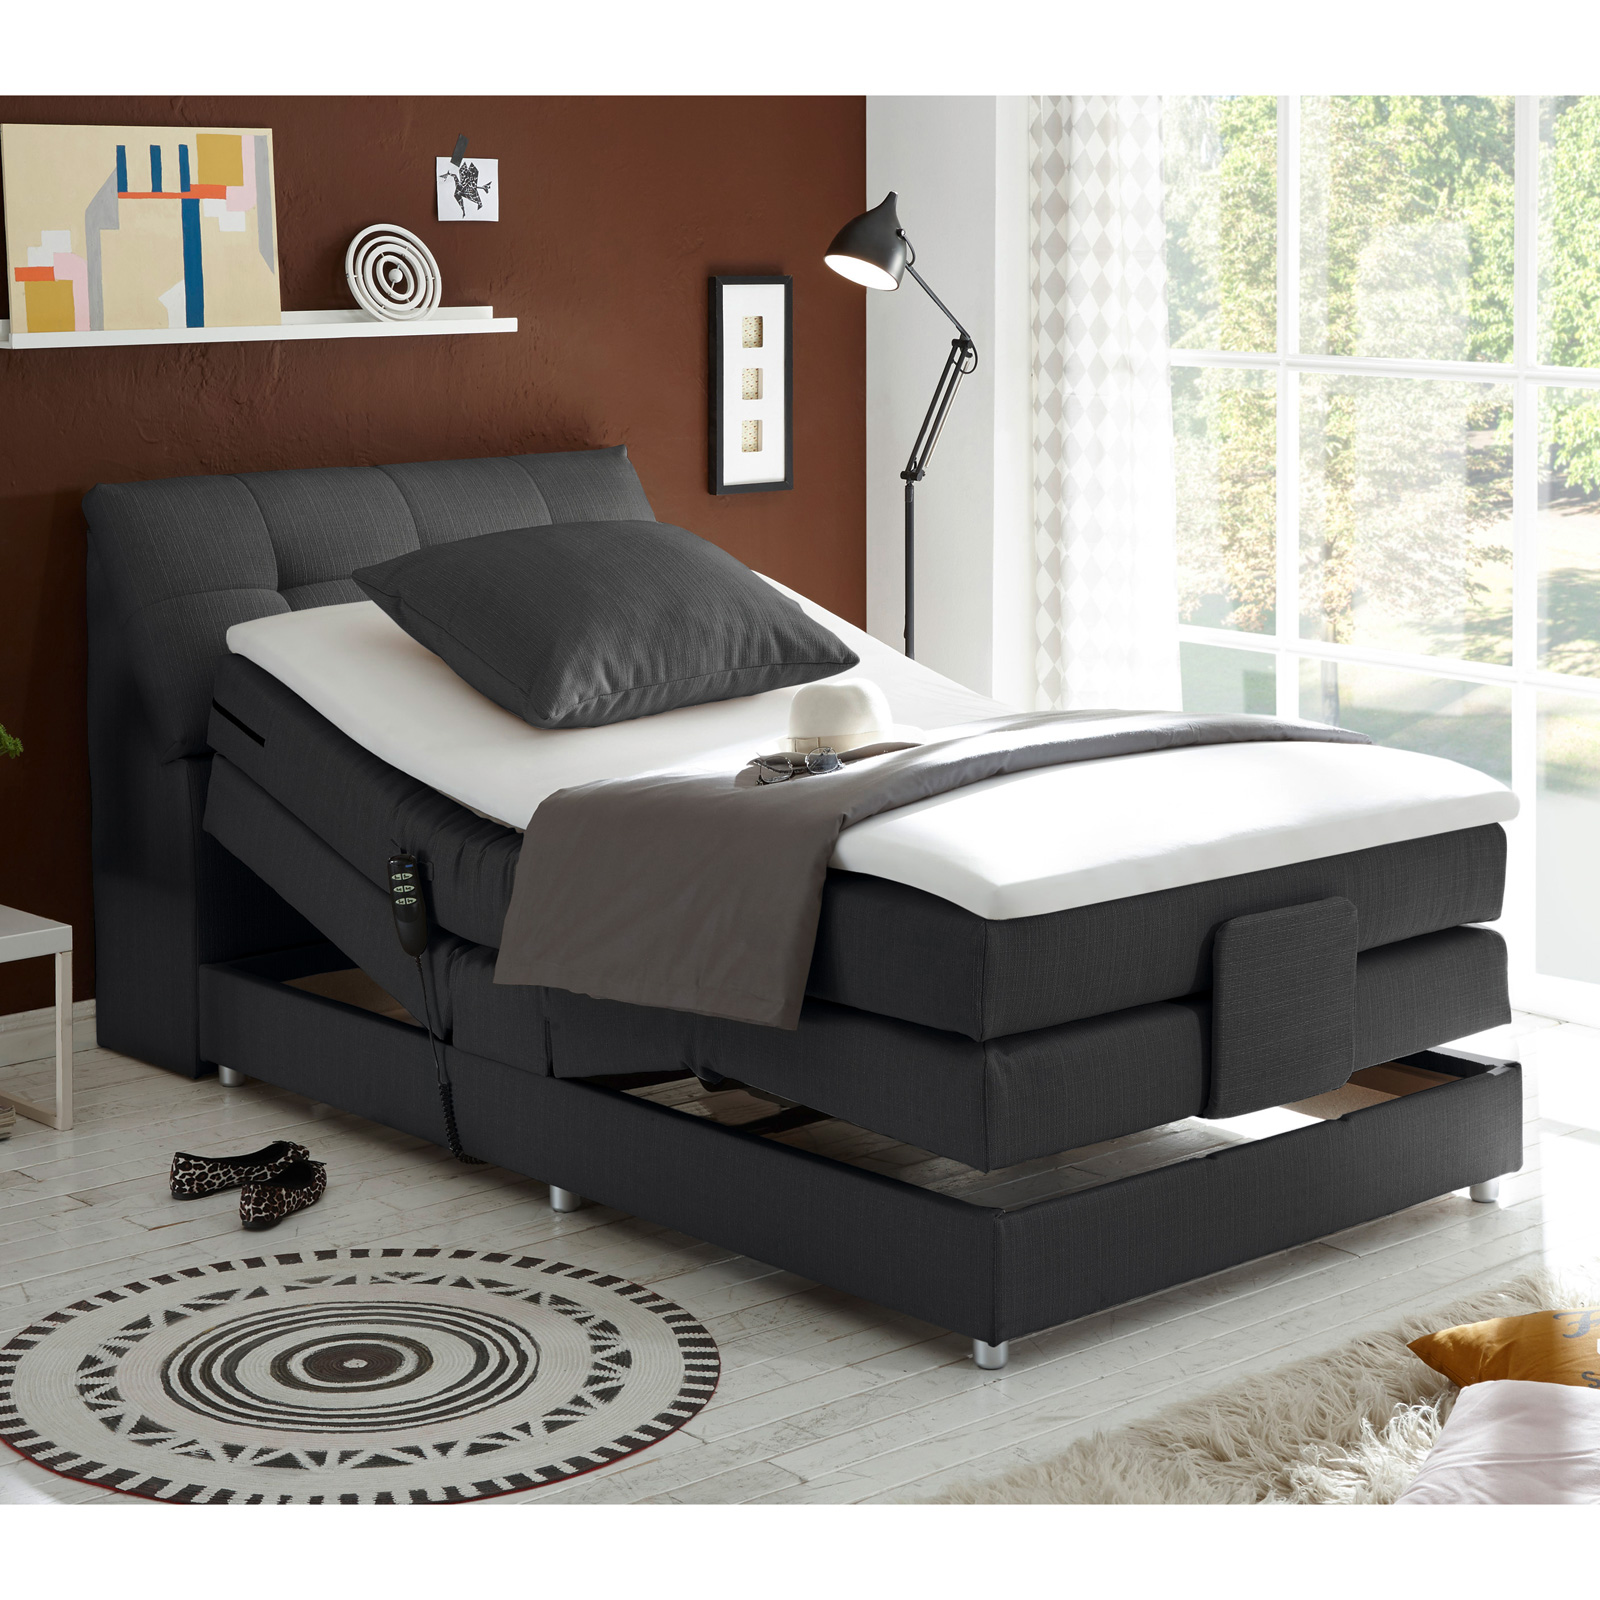 boxspringbett concort bett stoff inkl motor und topper farbauswahl 120x200 cm ebay. Black Bedroom Furniture Sets. Home Design Ideas